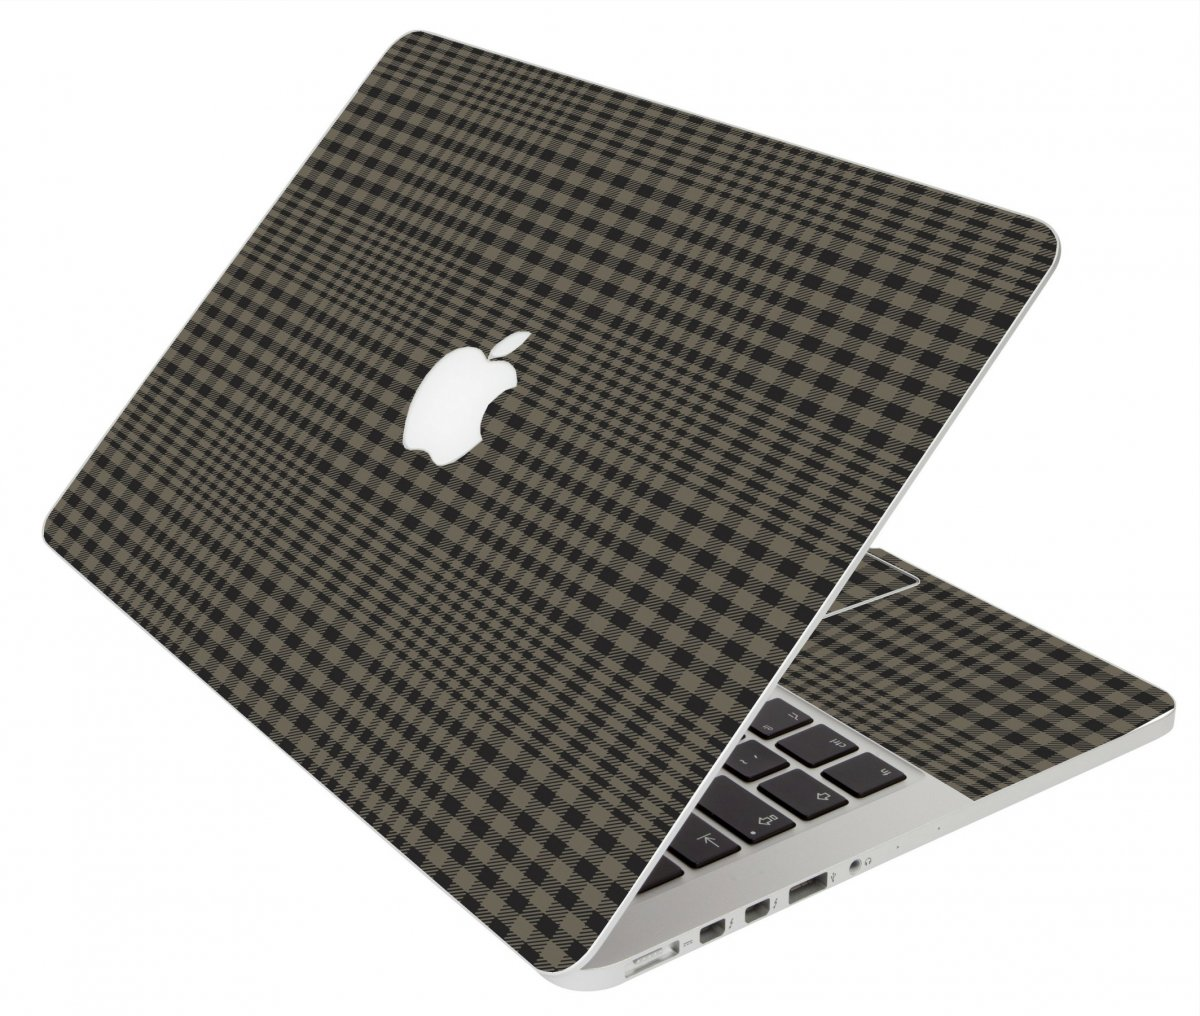 BEIGE PLAID MacBook Pro 12 Retina A1534 Laptop Skin